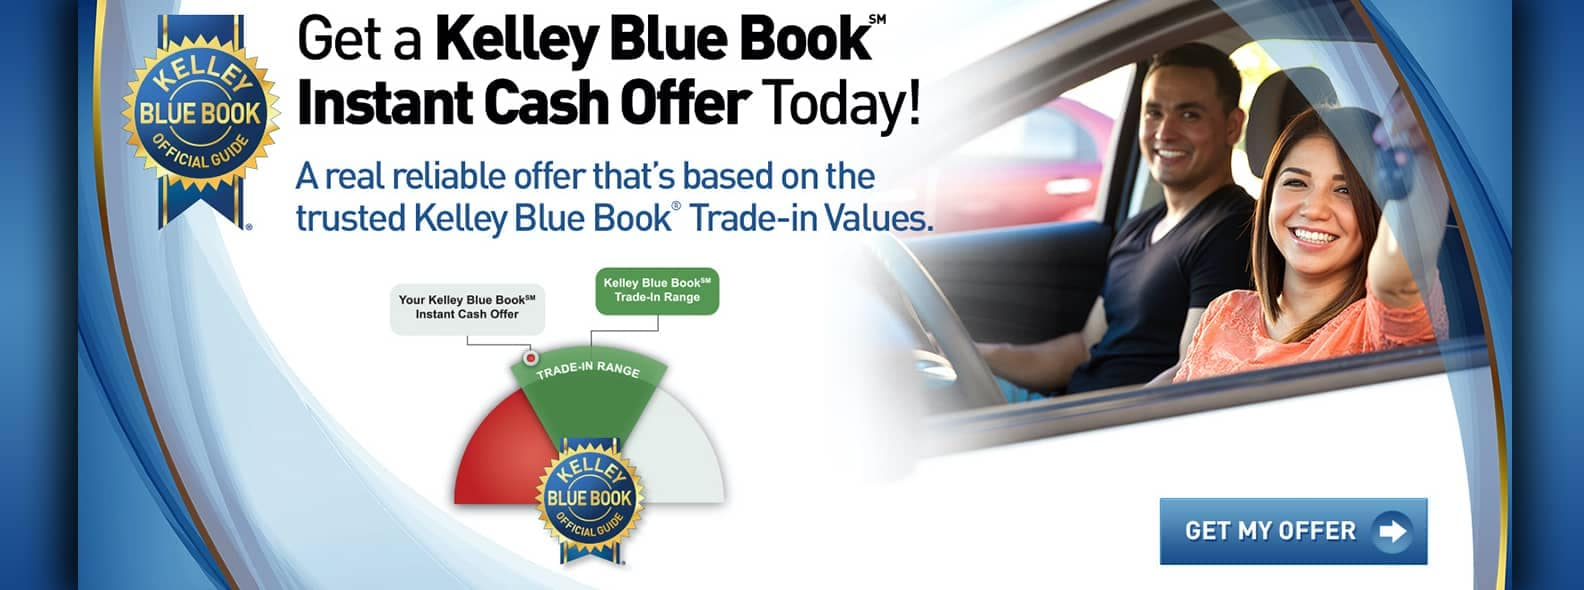 Kelley Blue Book instant cash offer banner